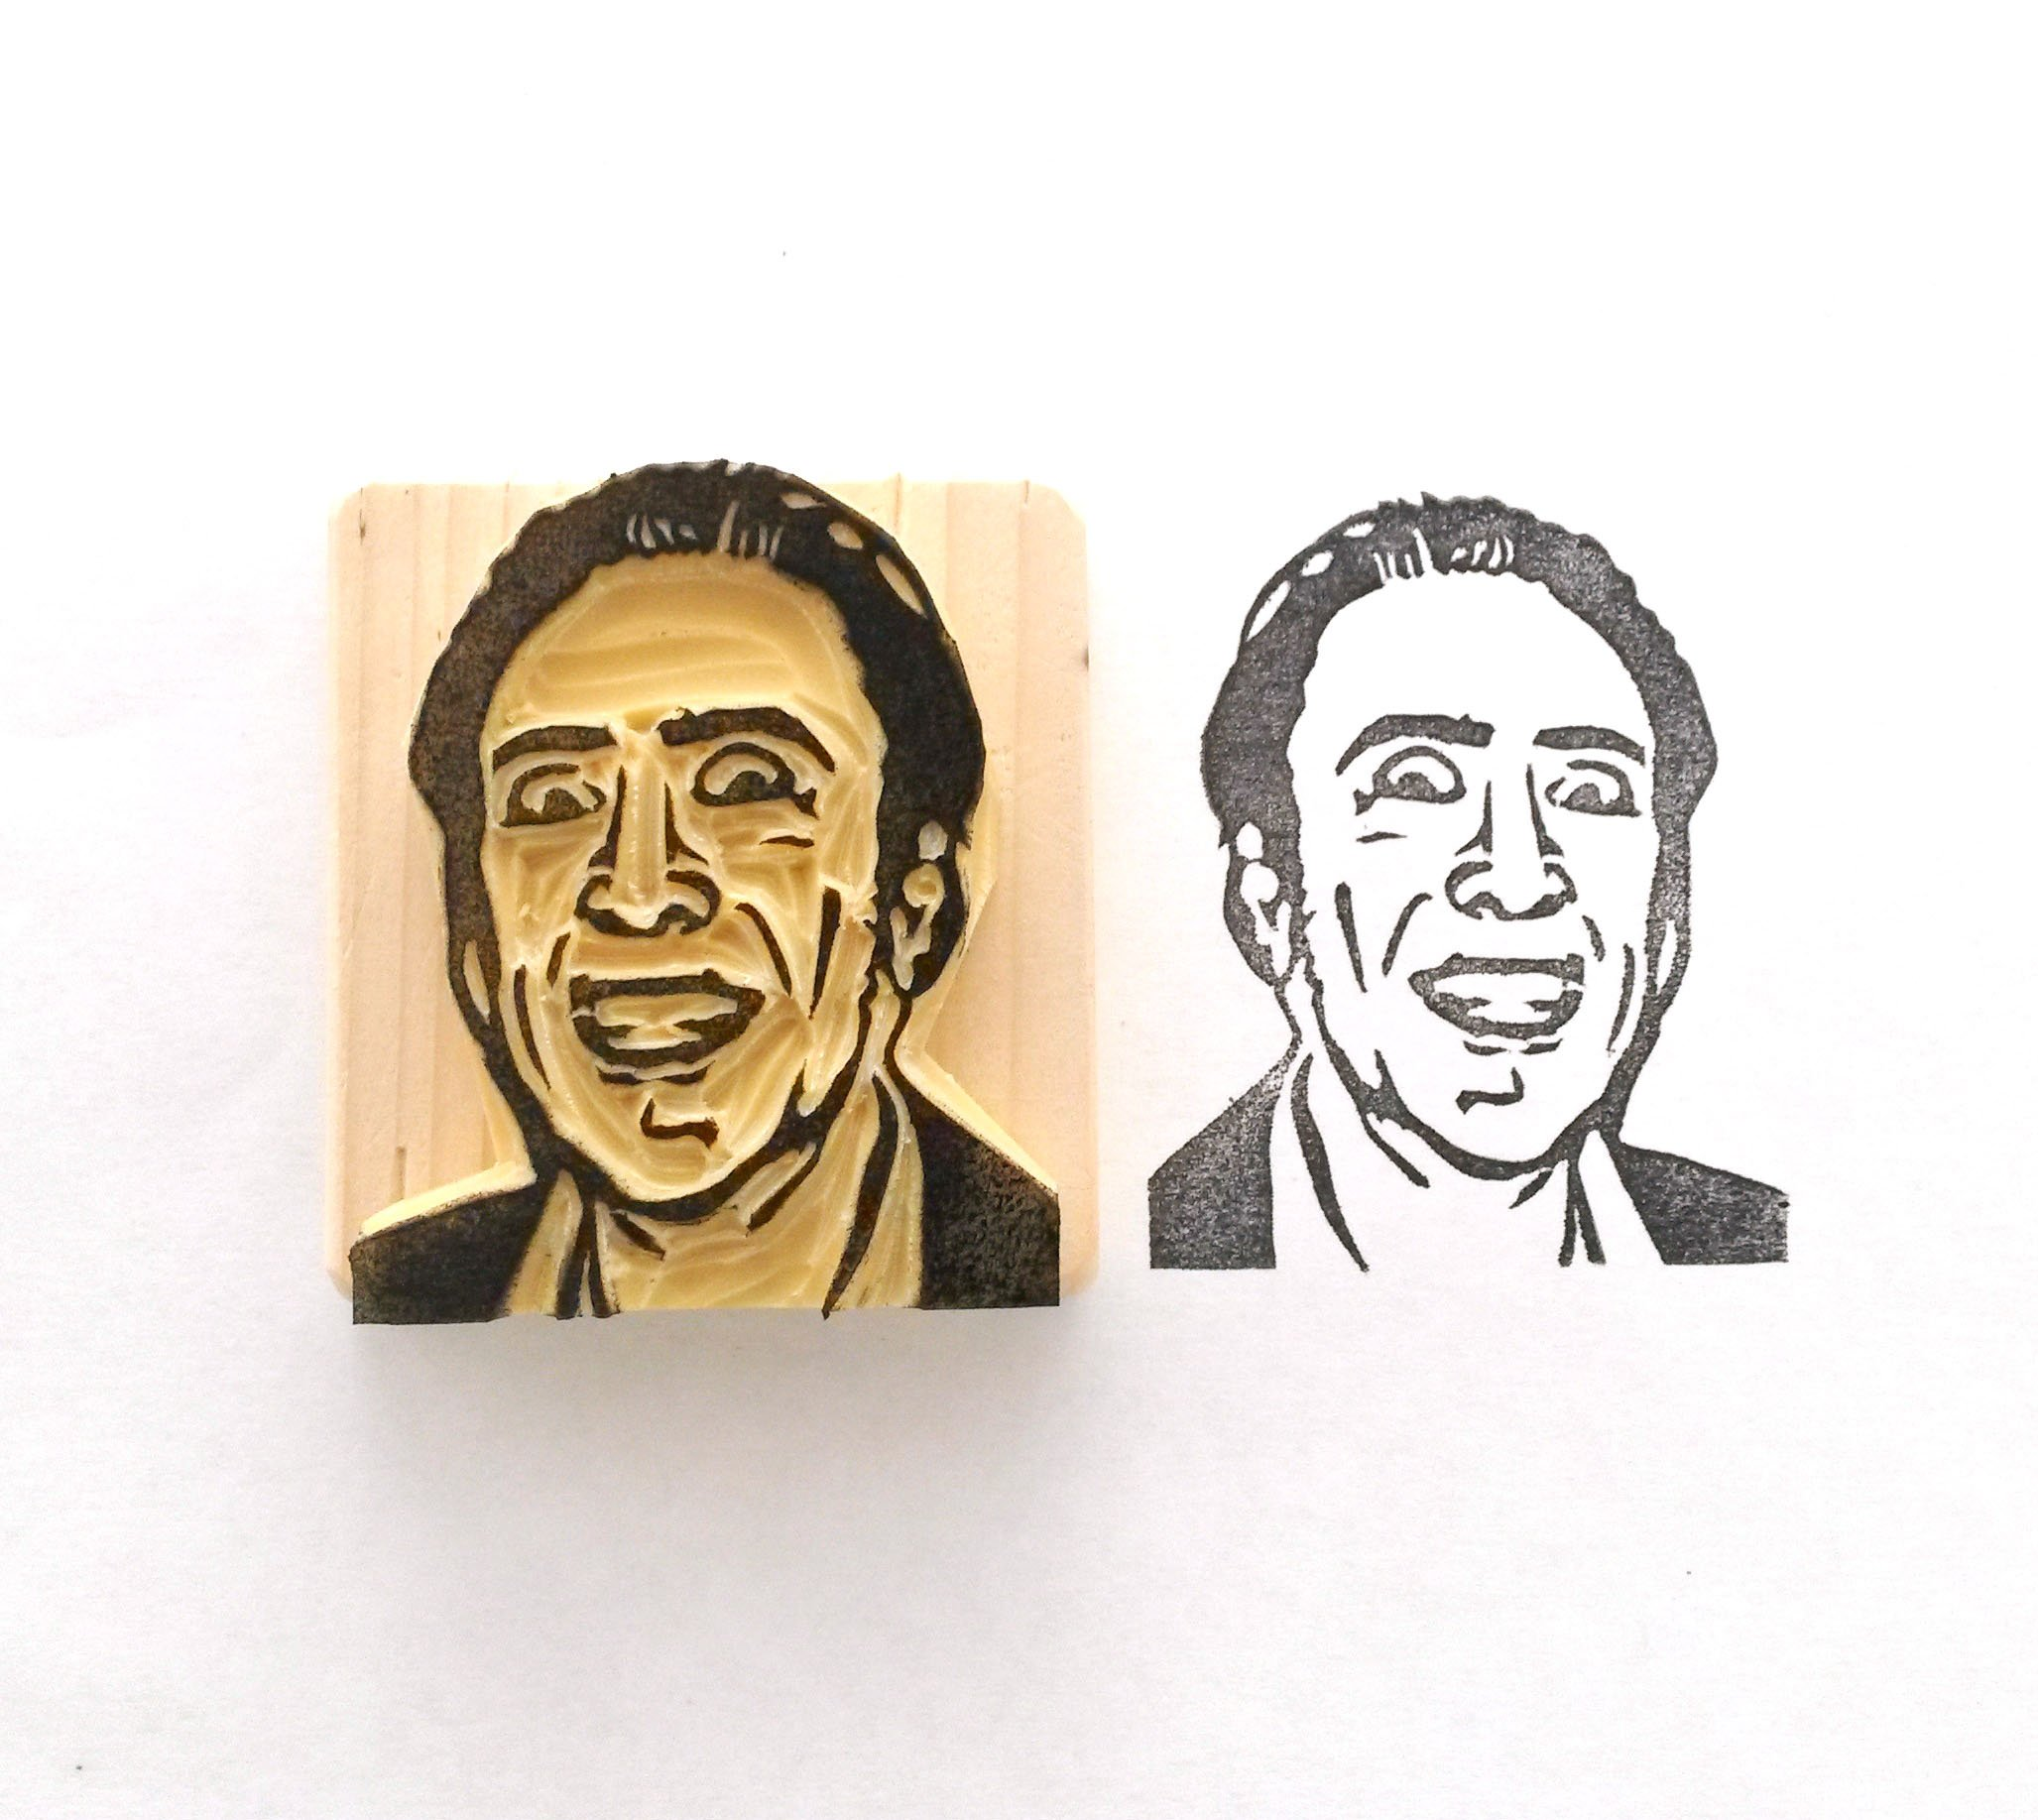 Nic Cage - Hand carved rubber stamp